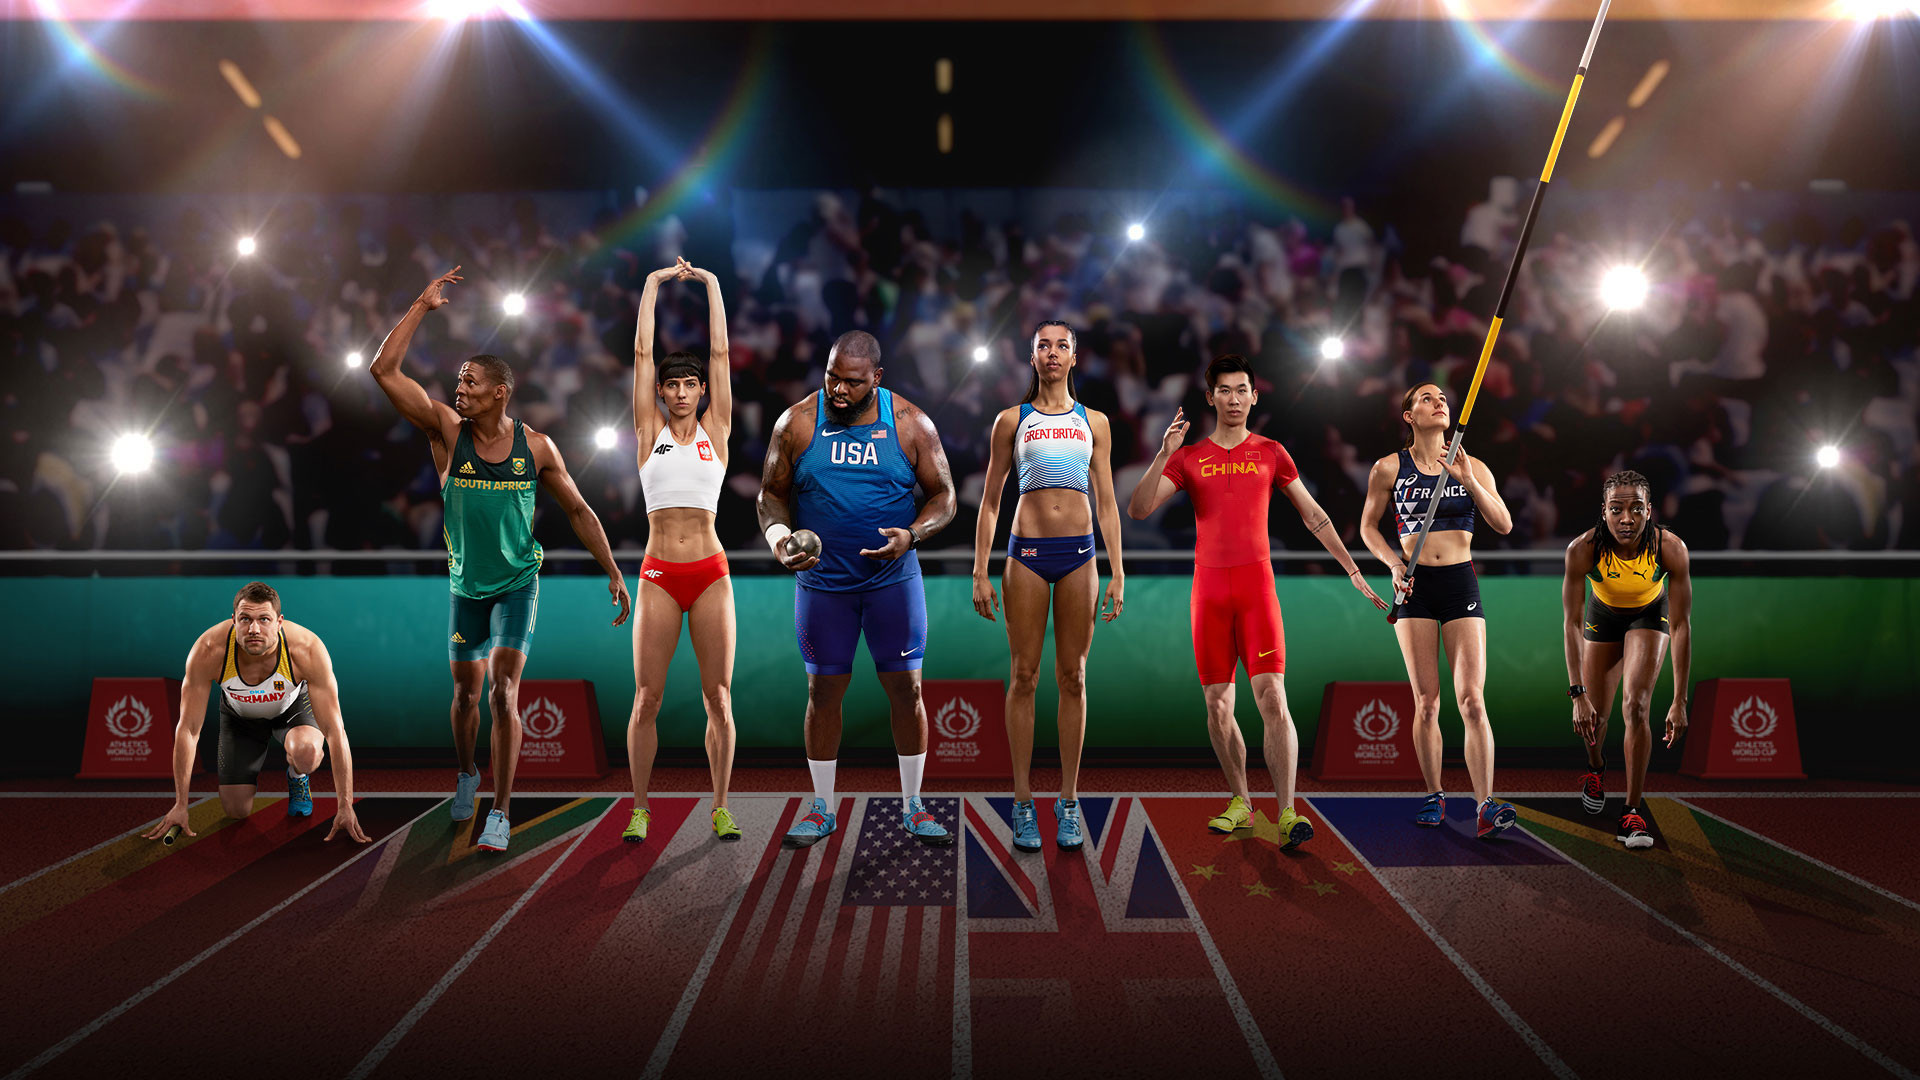 The Athletics World Cup will take place in London this weekend ©Athletics World Cup